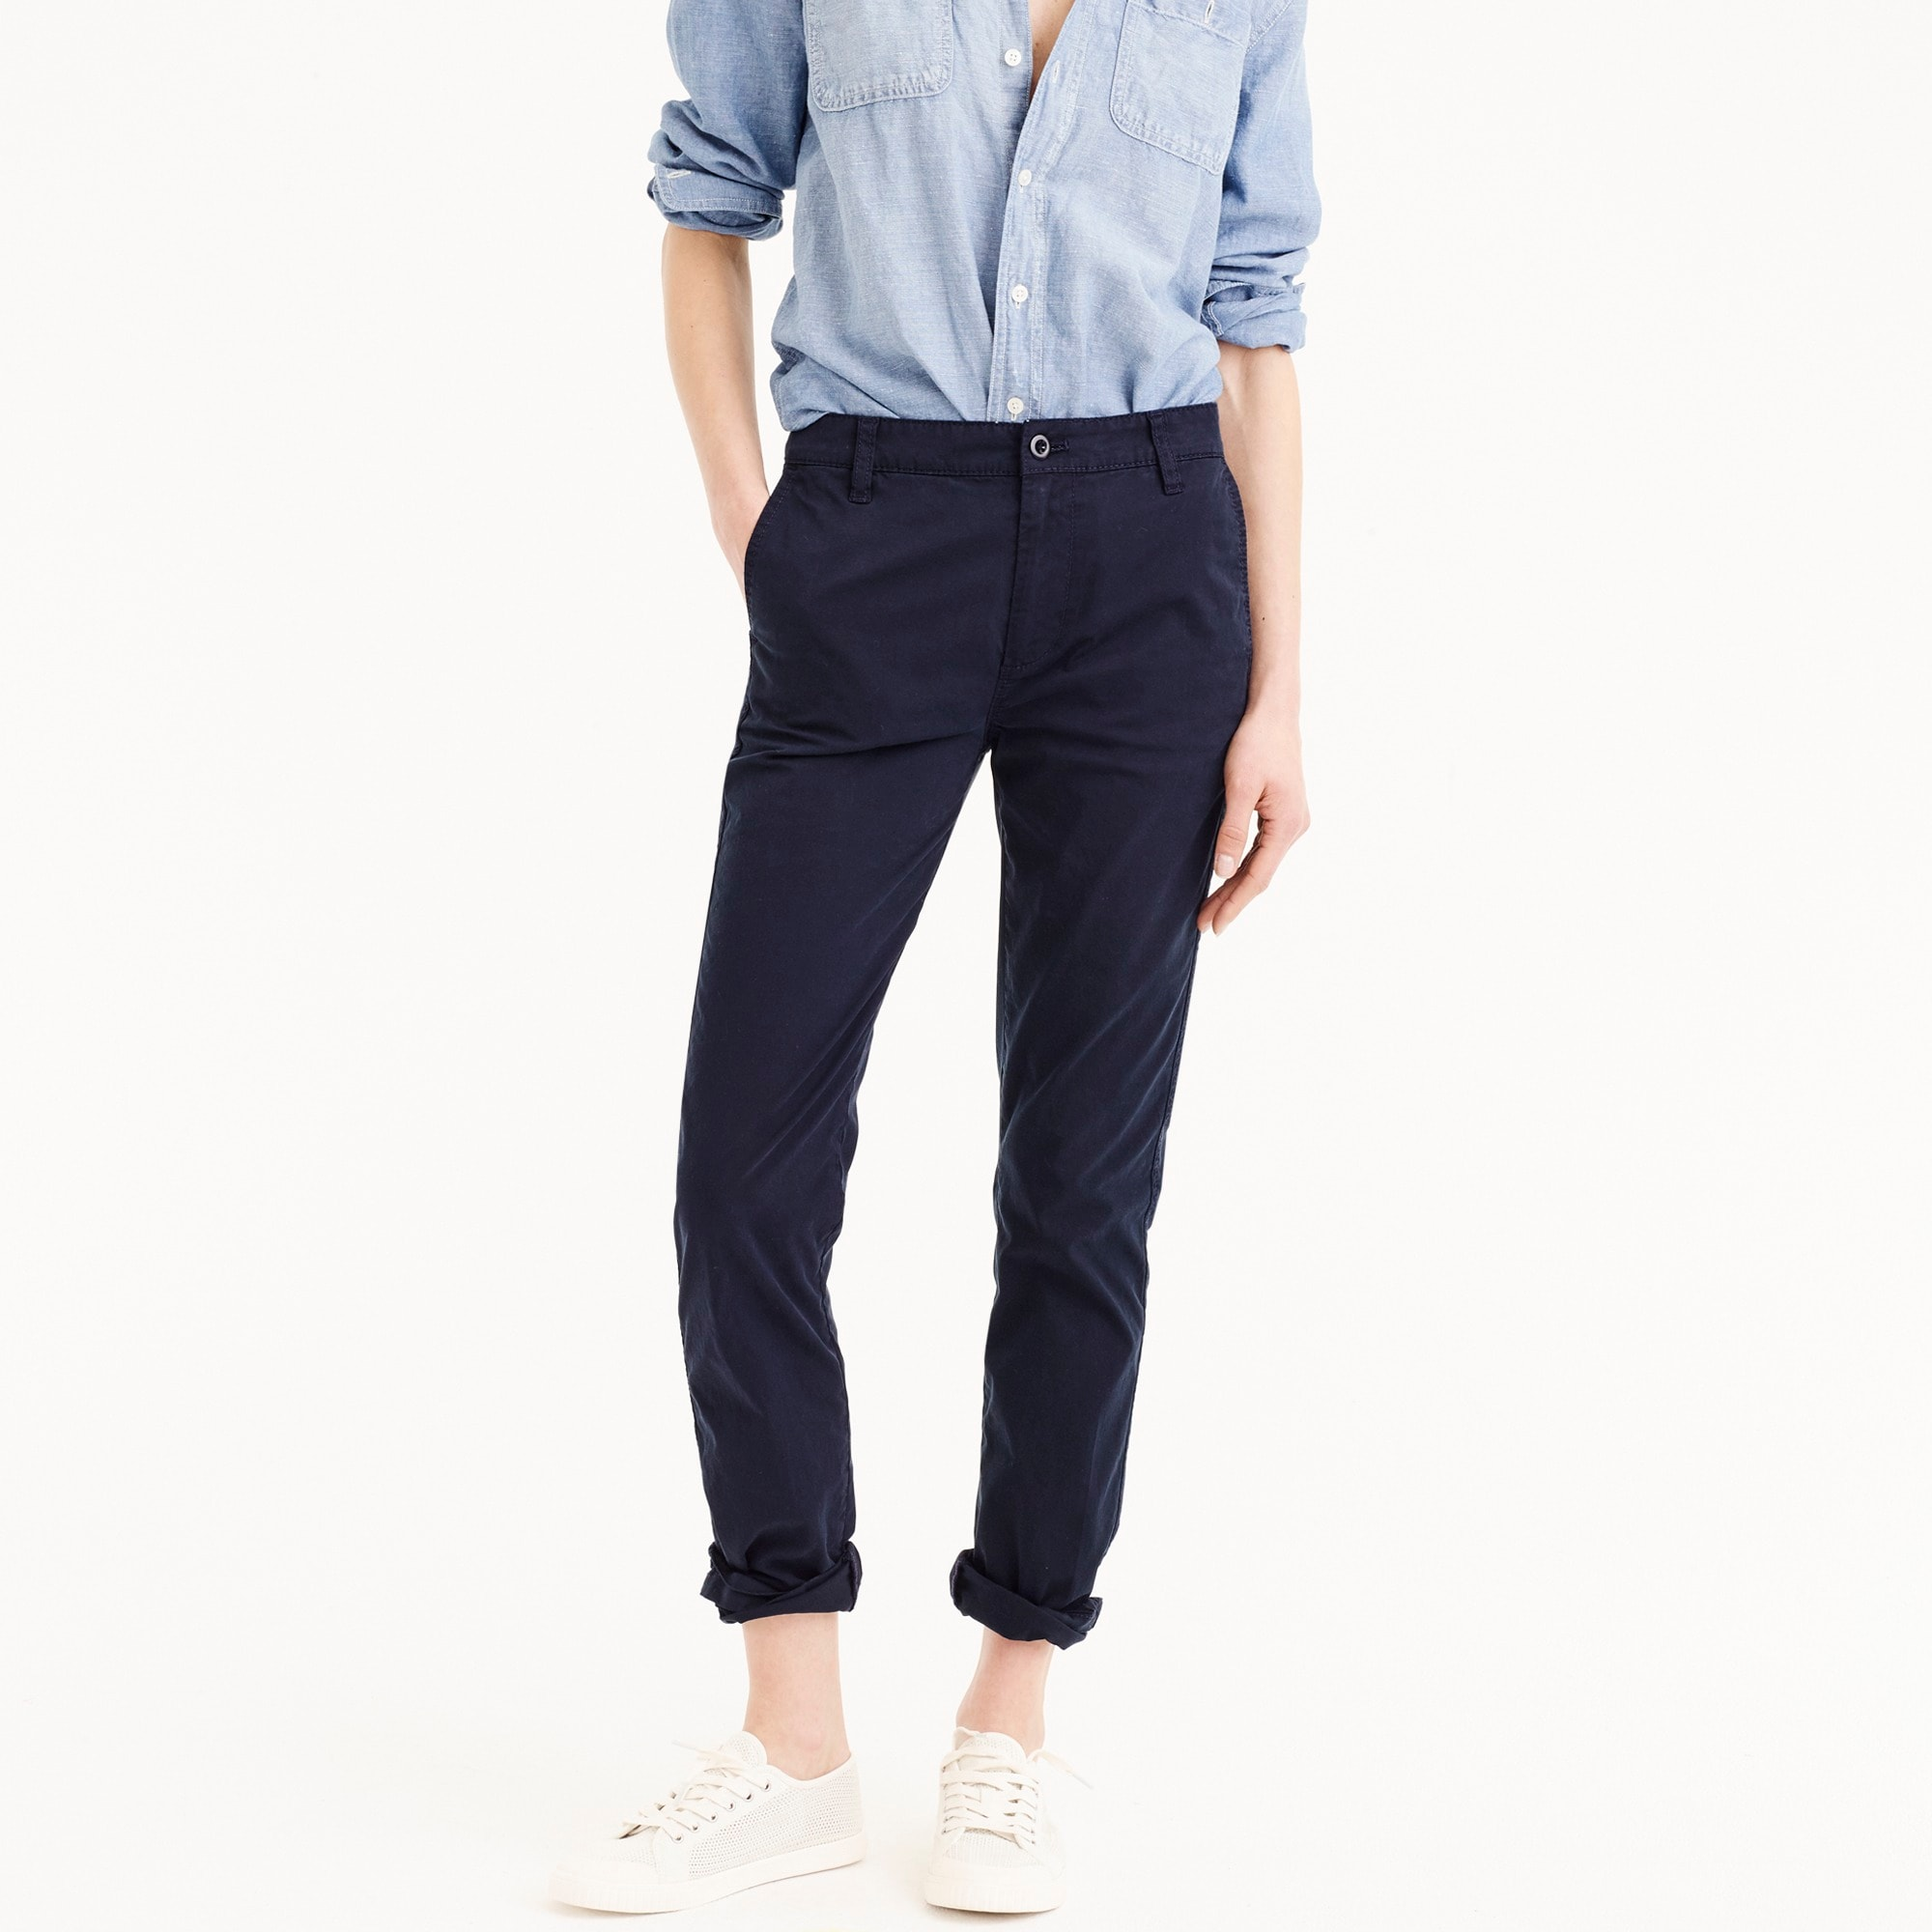 Image 1 for Tall straight-leg pant in stretch chino